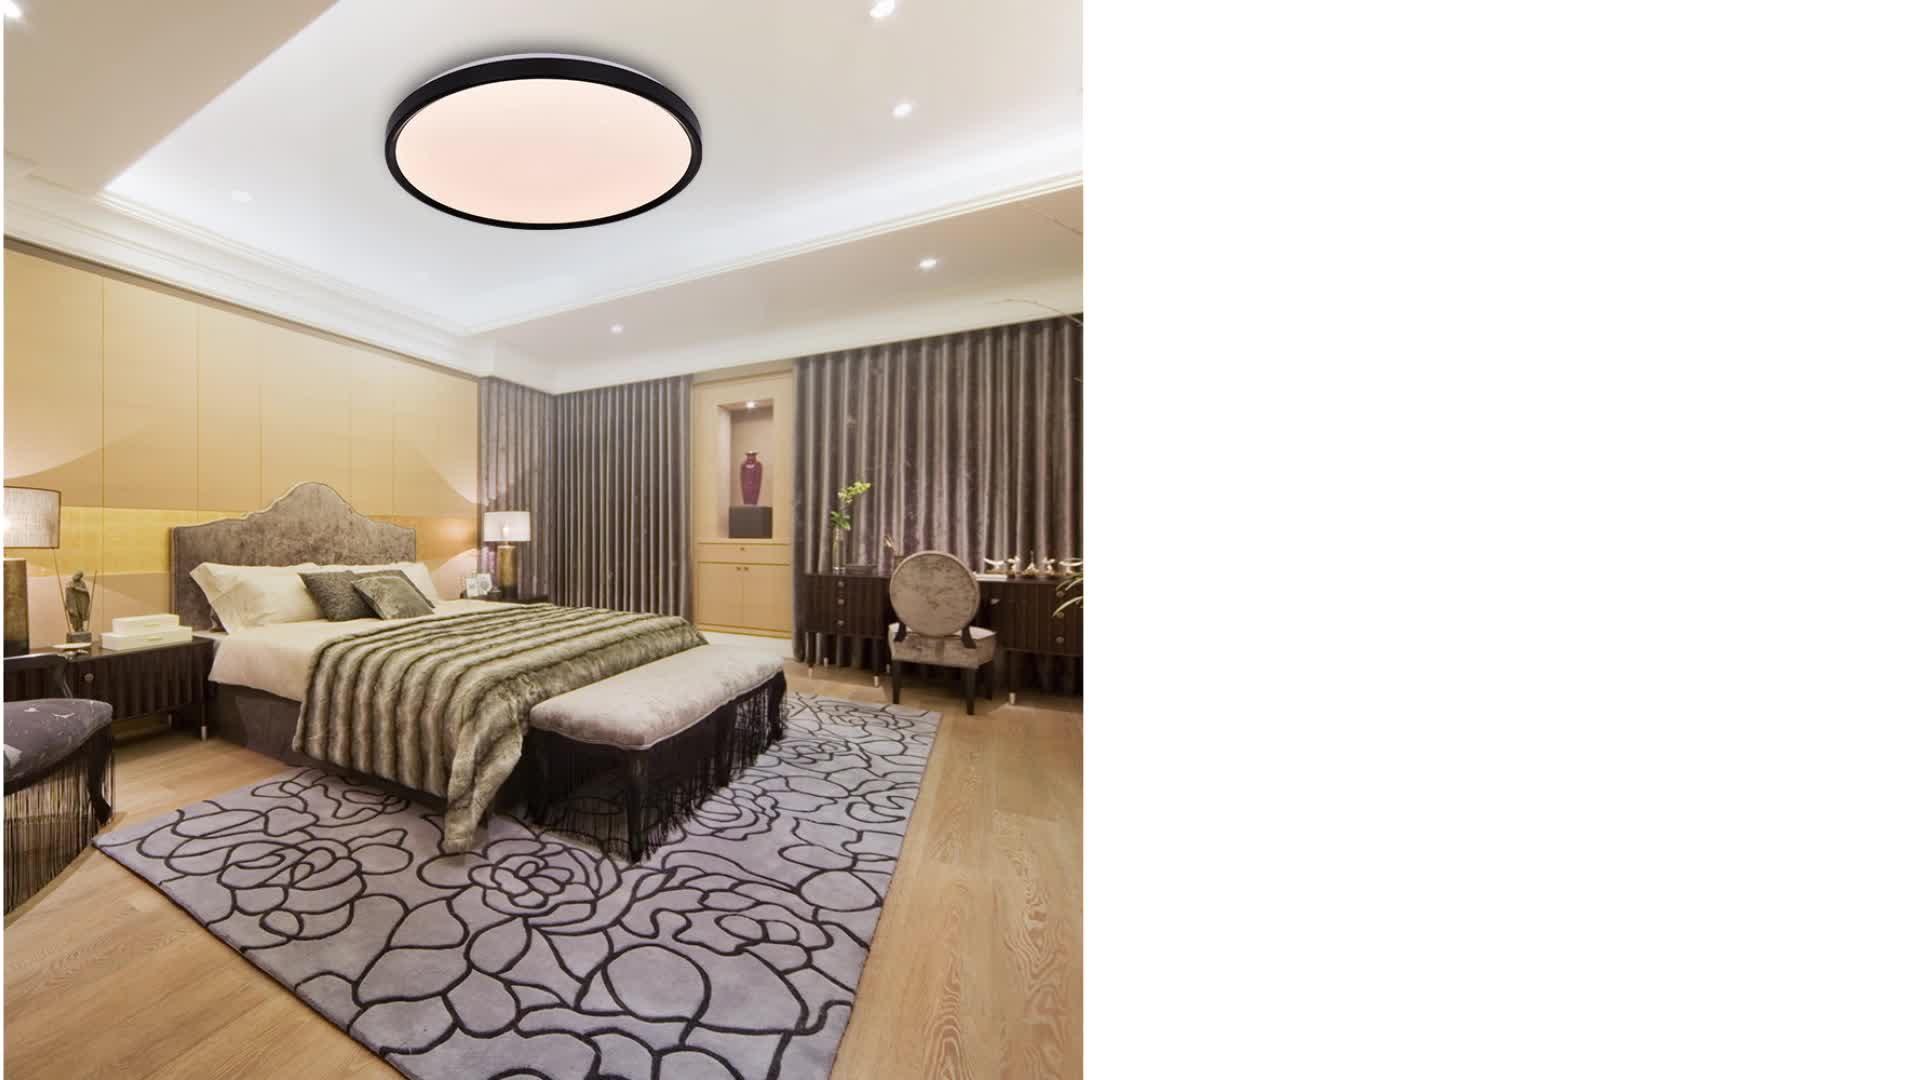 Indoor Residential Ceiling Light Rgb Multiple Colors Ultraslim Ceiling Lamps Infrared Remote Control Livarno luxe for Bedroom